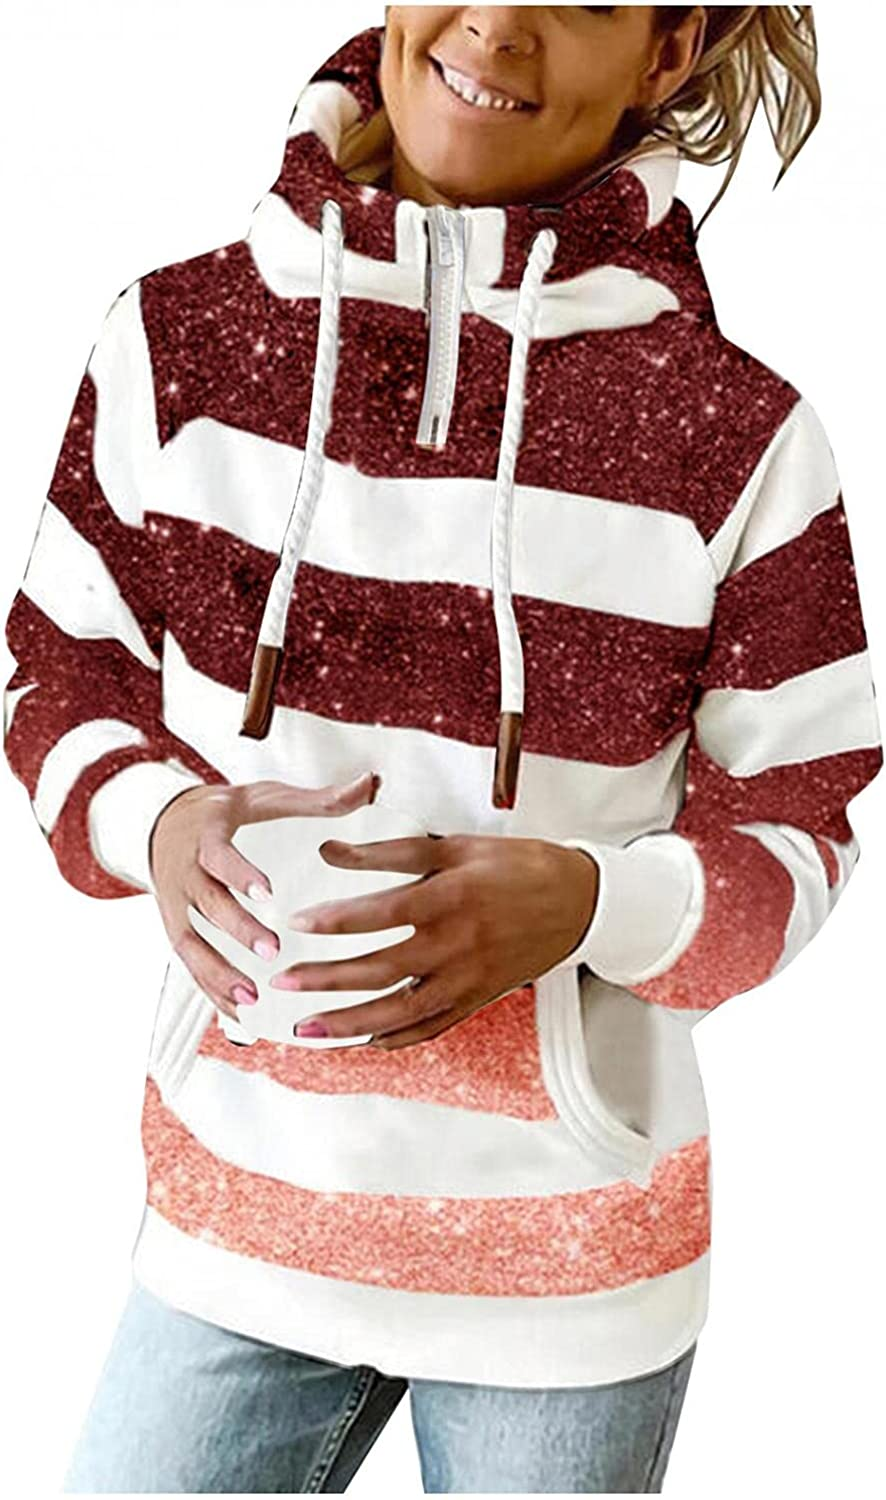 AODONG Hooded Sweatshirts for Women Casual Long Sleeve 1/4 Zipper Lightweight Loose Striped Hoodies Pullover with Pocket